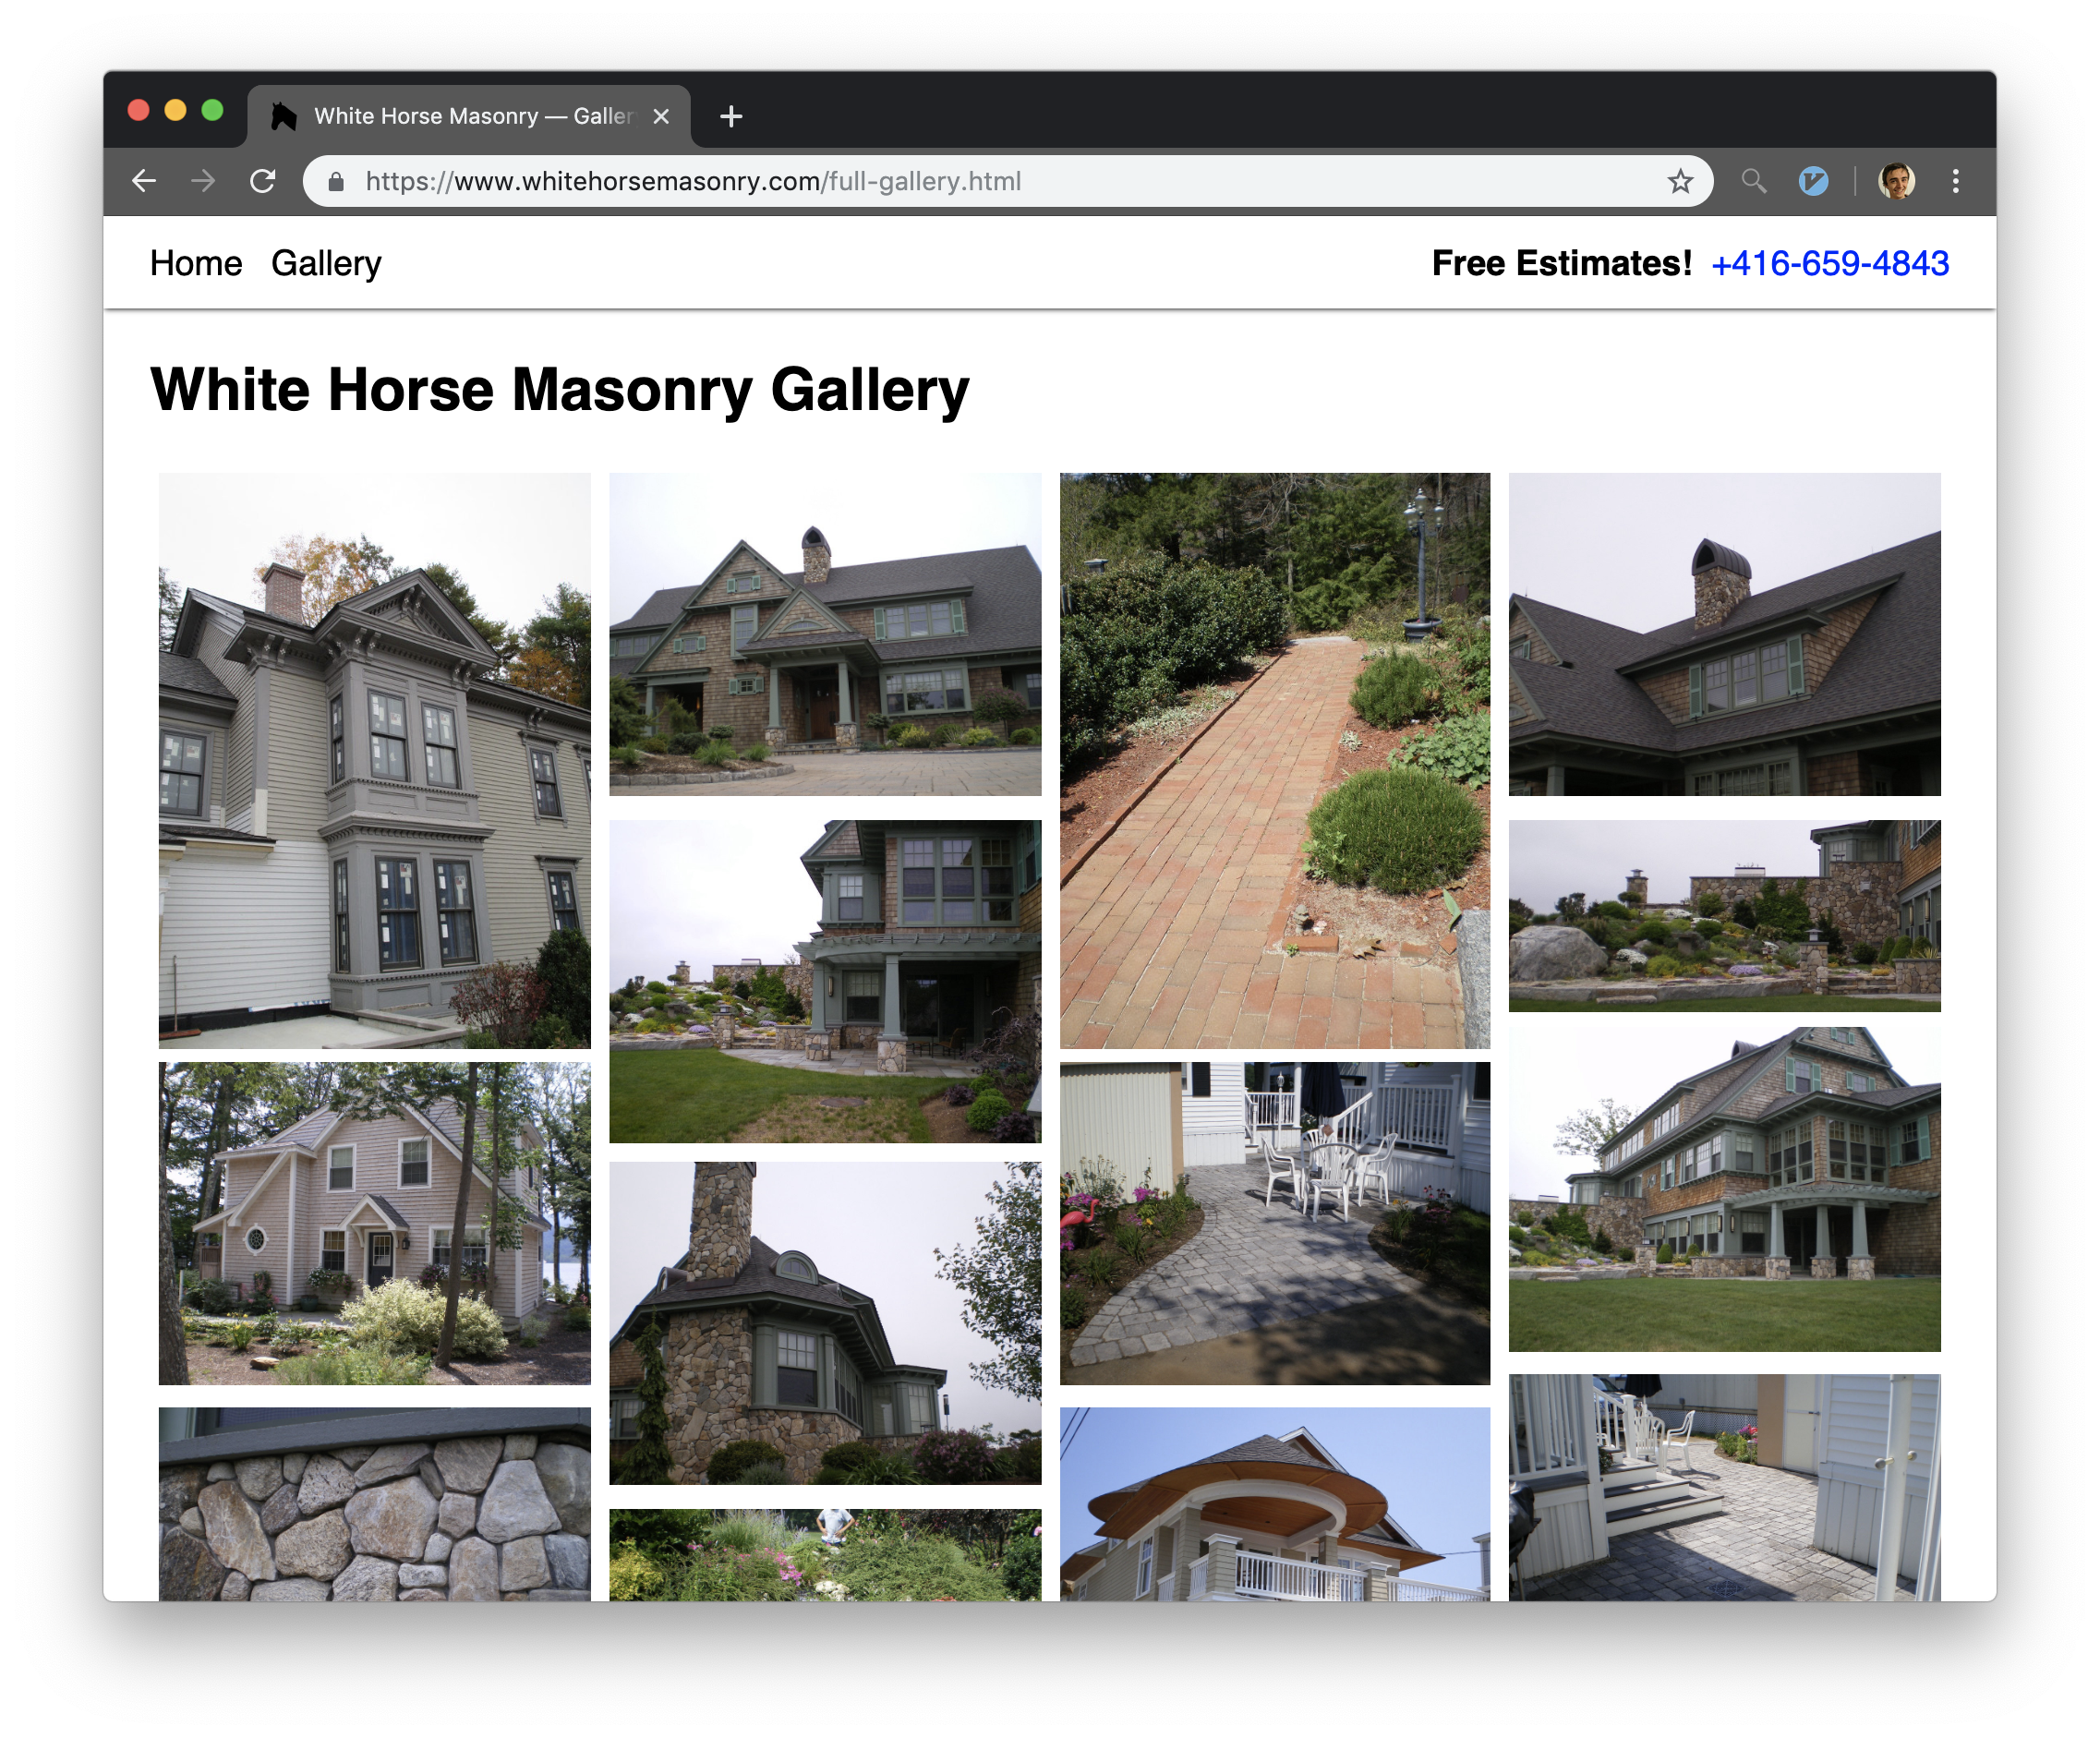 A screen shot of the white horse masonry website galleryq page.